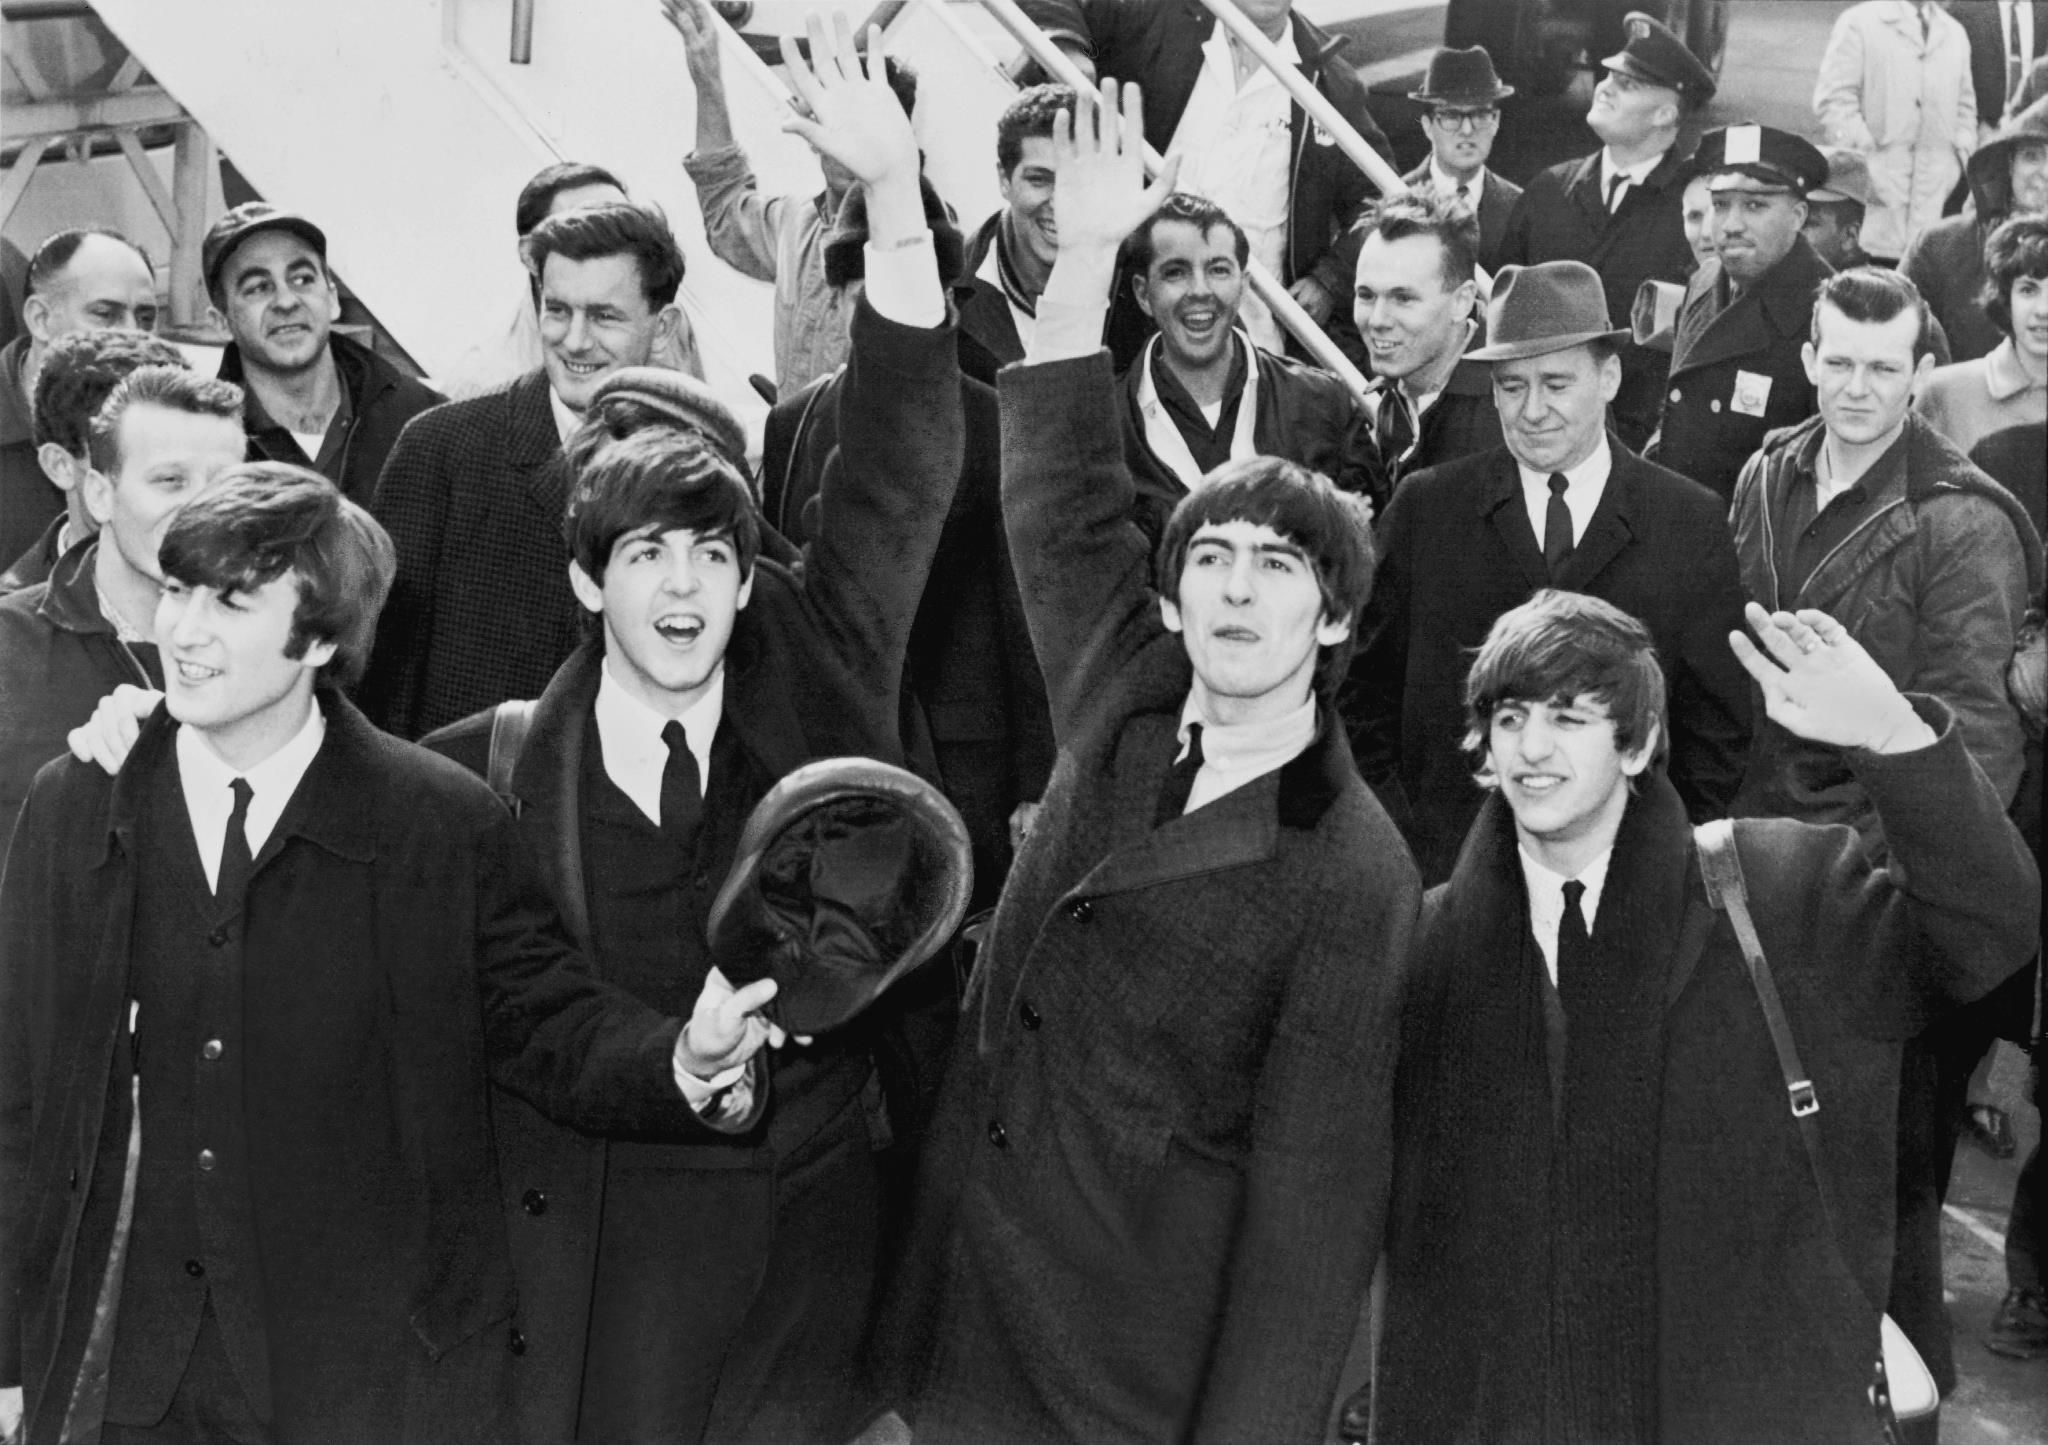 February 7, 1964, The Beatles arrived in New York to begin